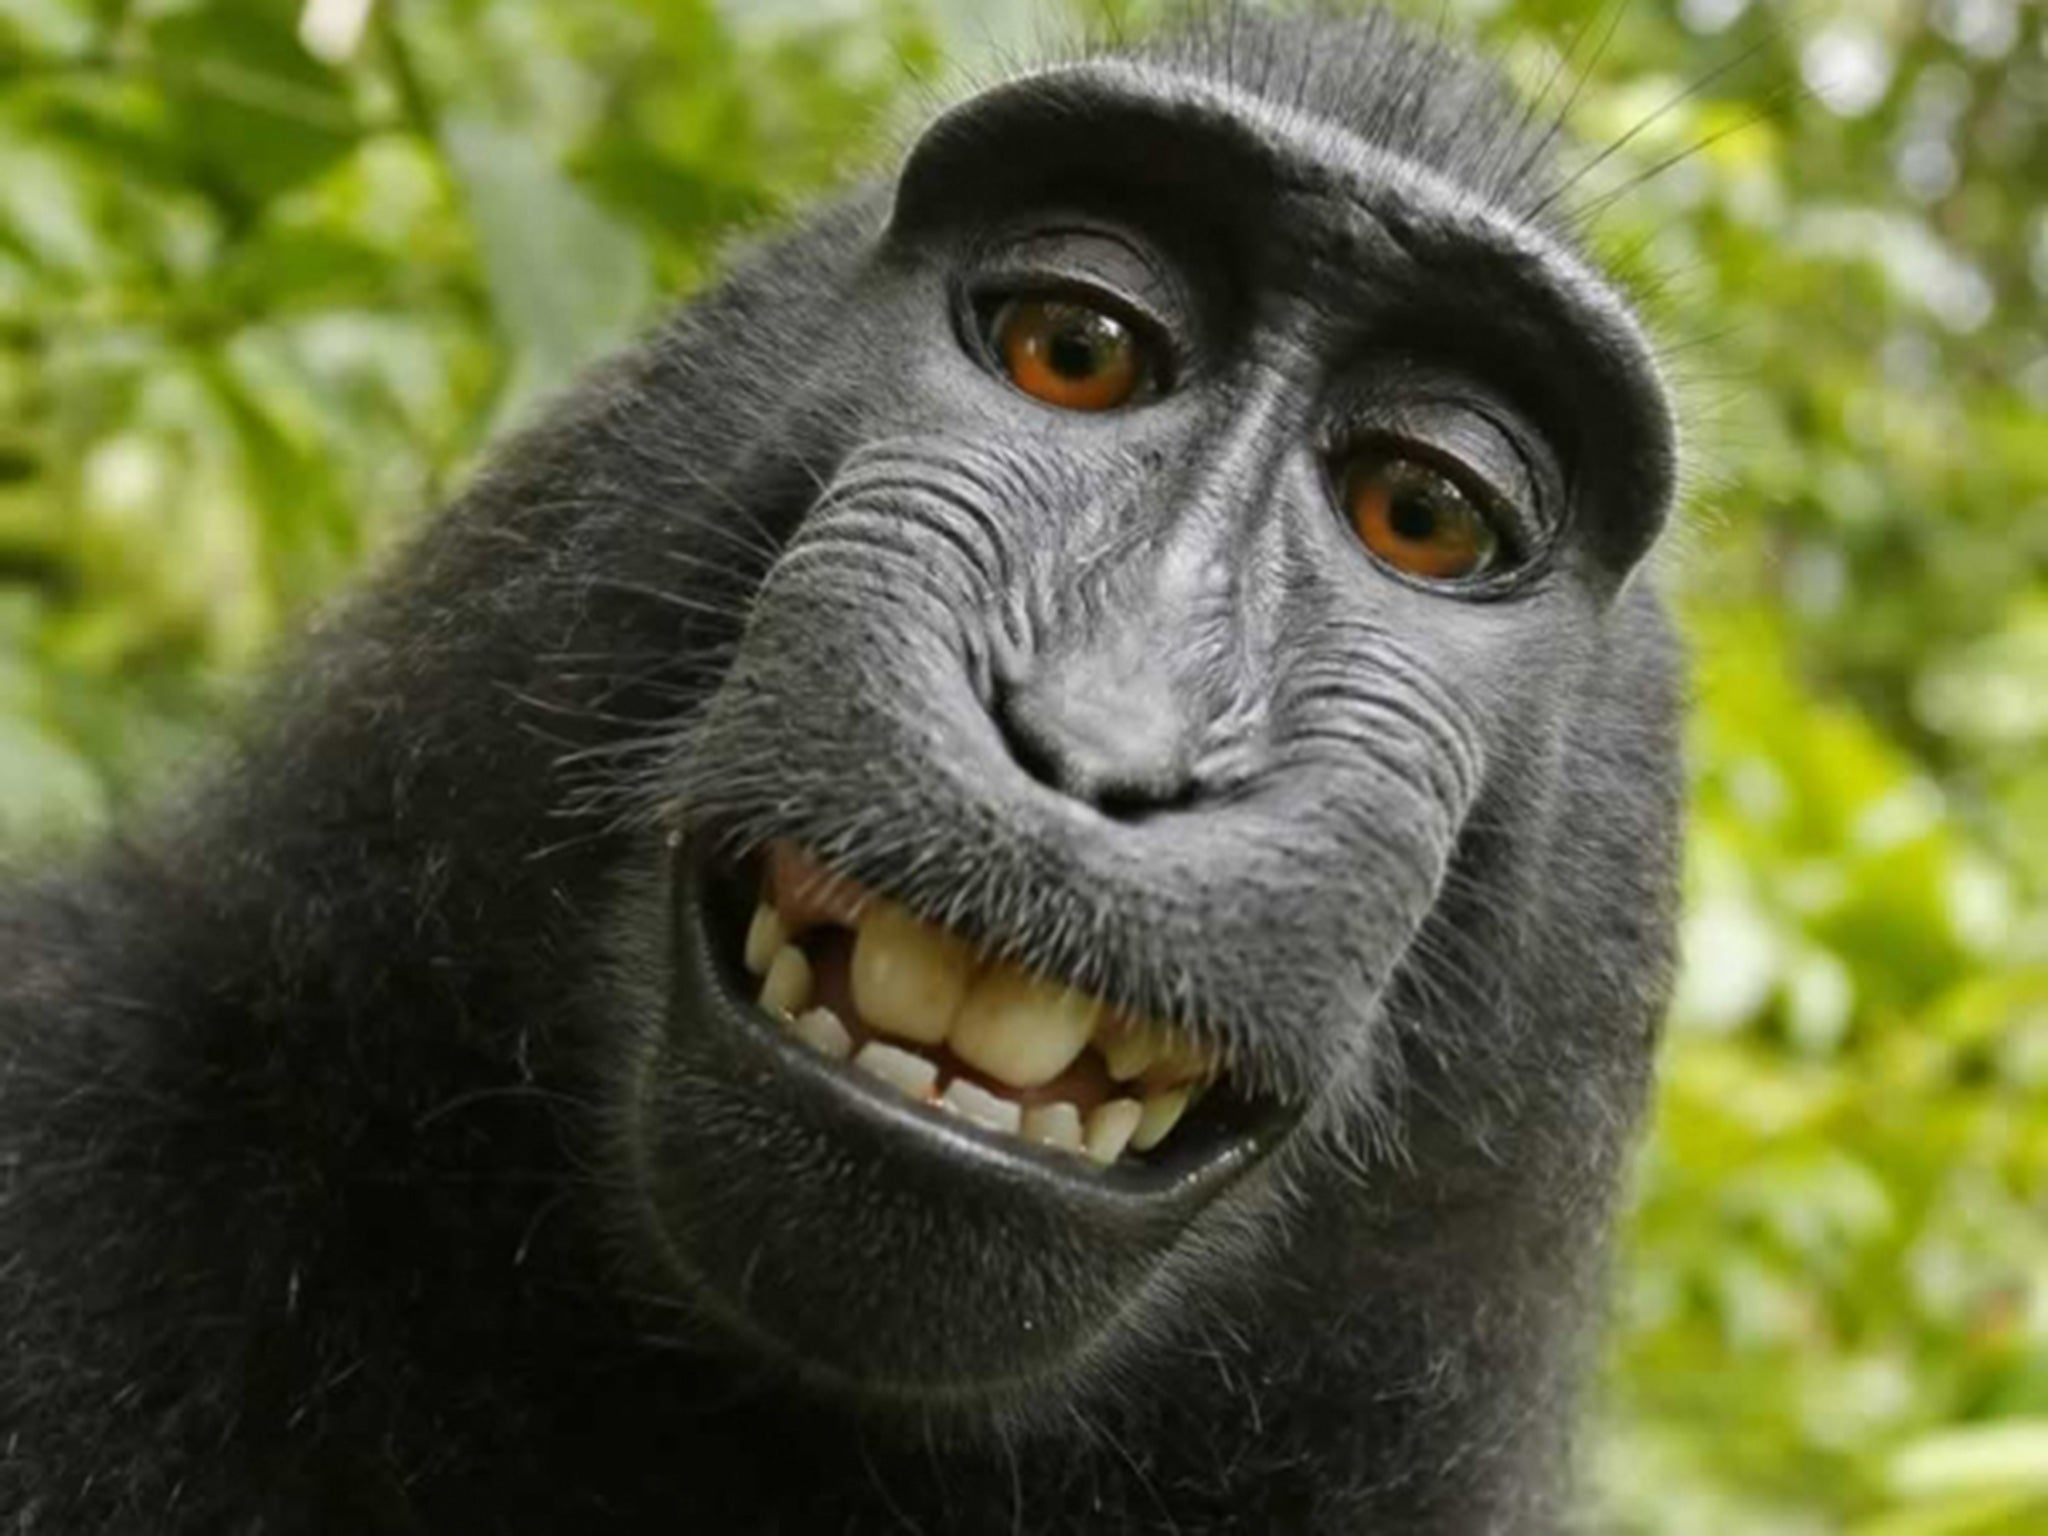 Monkey selfie: Judge rules macaque who took grinning photograph of himself 'cannot own copyright' | The Independent